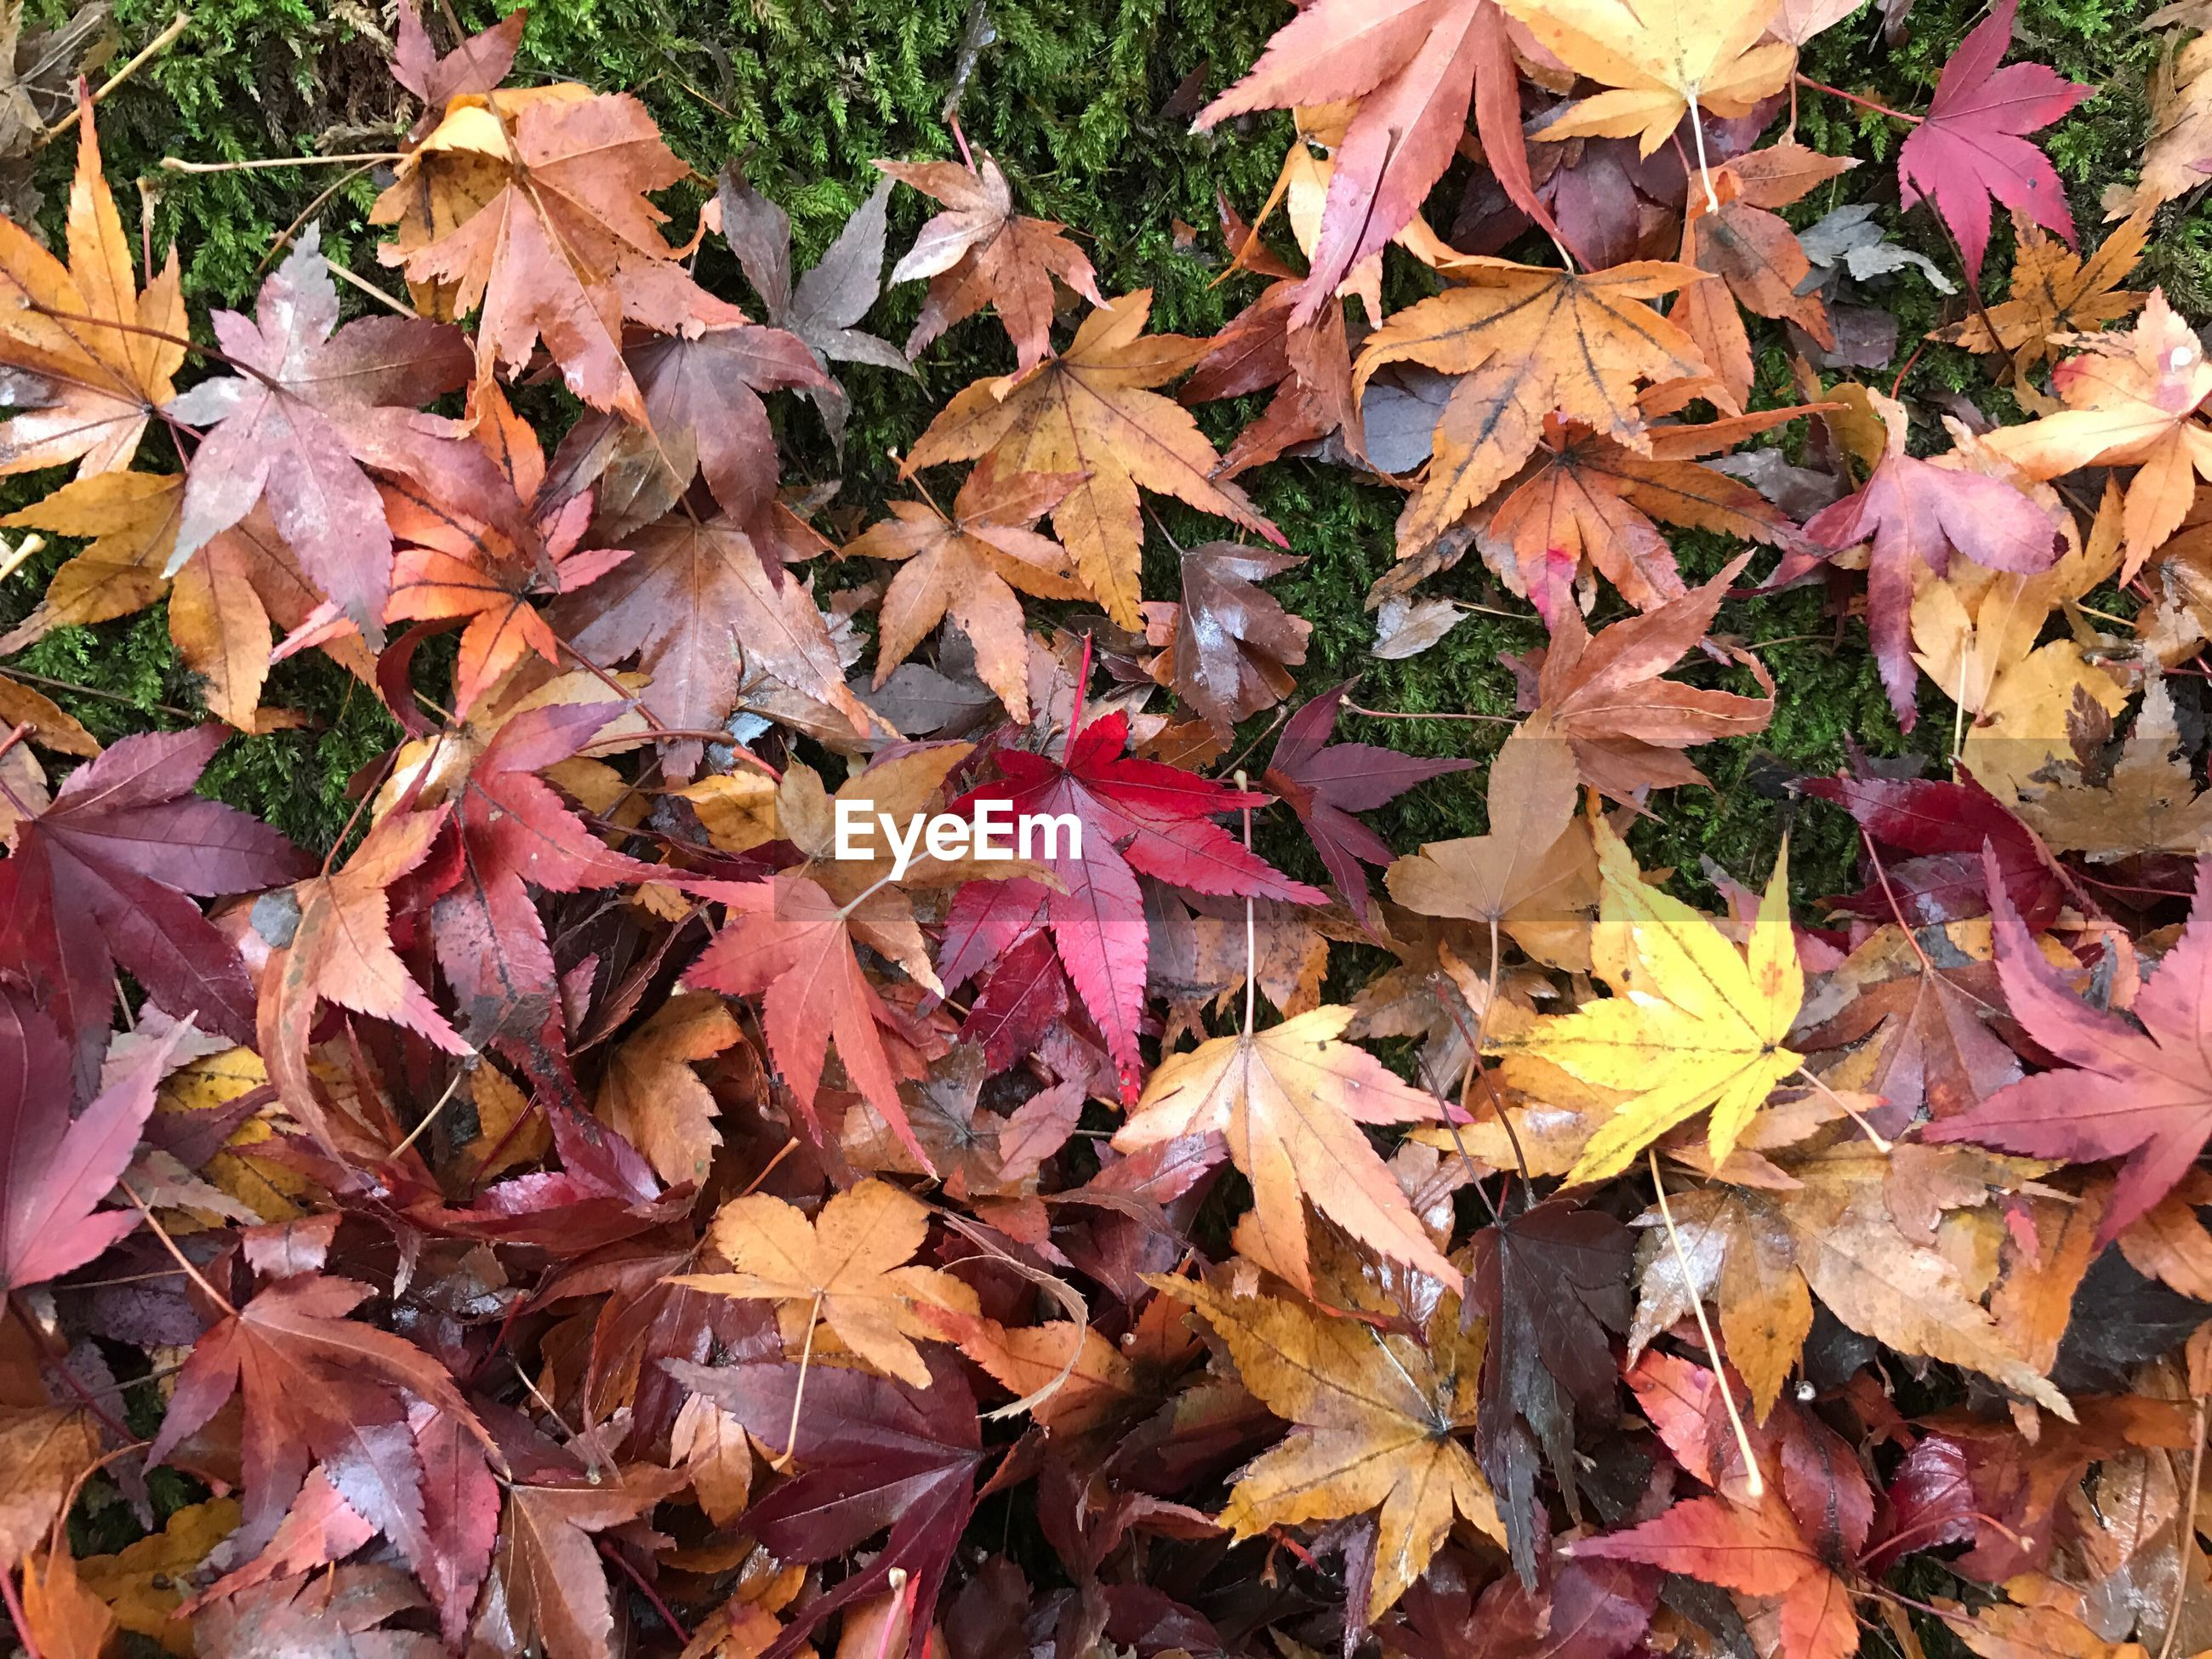 CLOSE-UP OF MAPLE LEAVES FALLEN ON AUTUMN